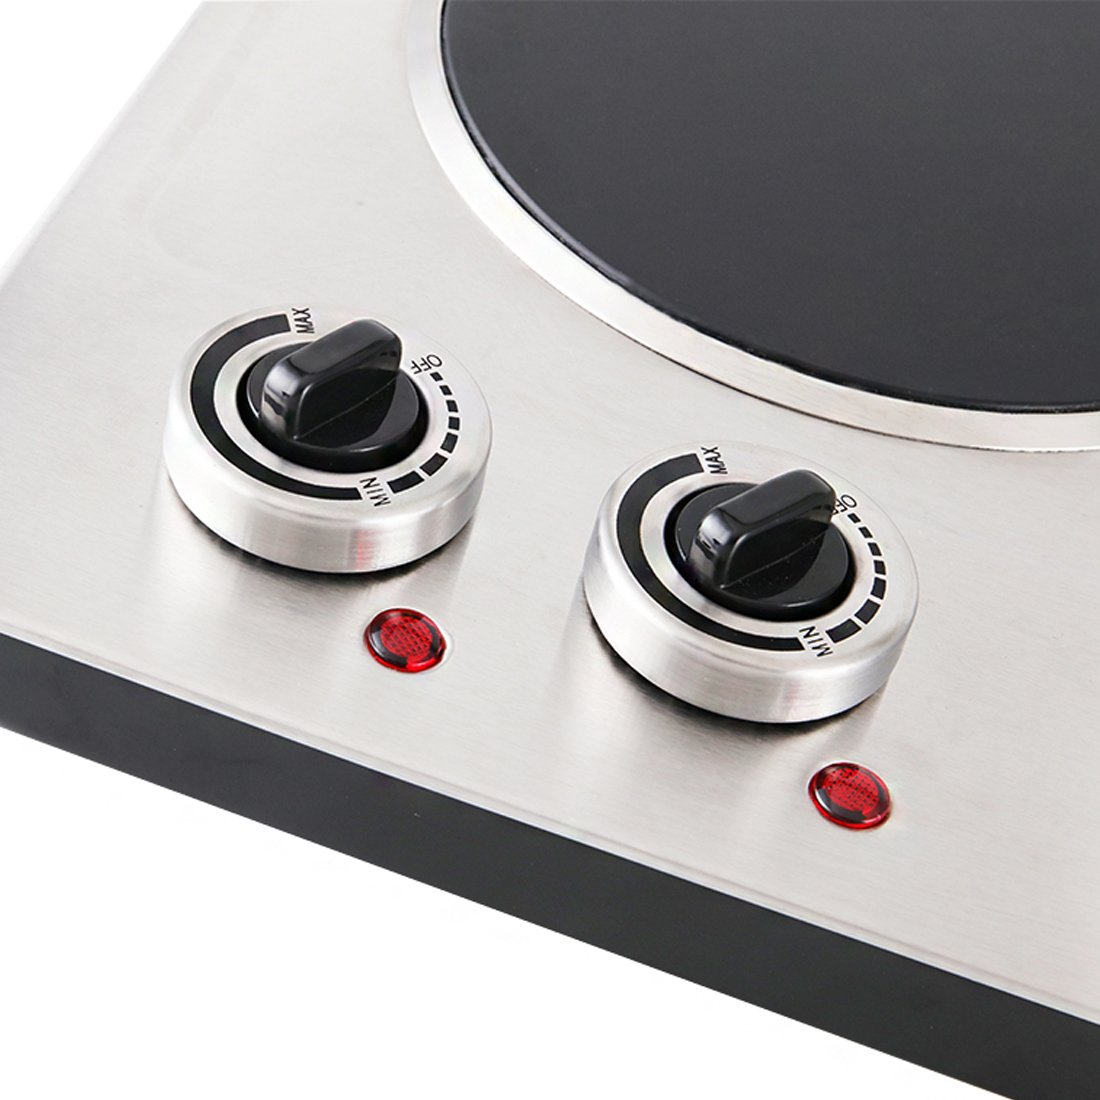 Cusimax 1800W Infrared Cooktop, Ceramic Double Countertop Burner with Dual Temperature Control, CMIP-C180, Stainless Steel